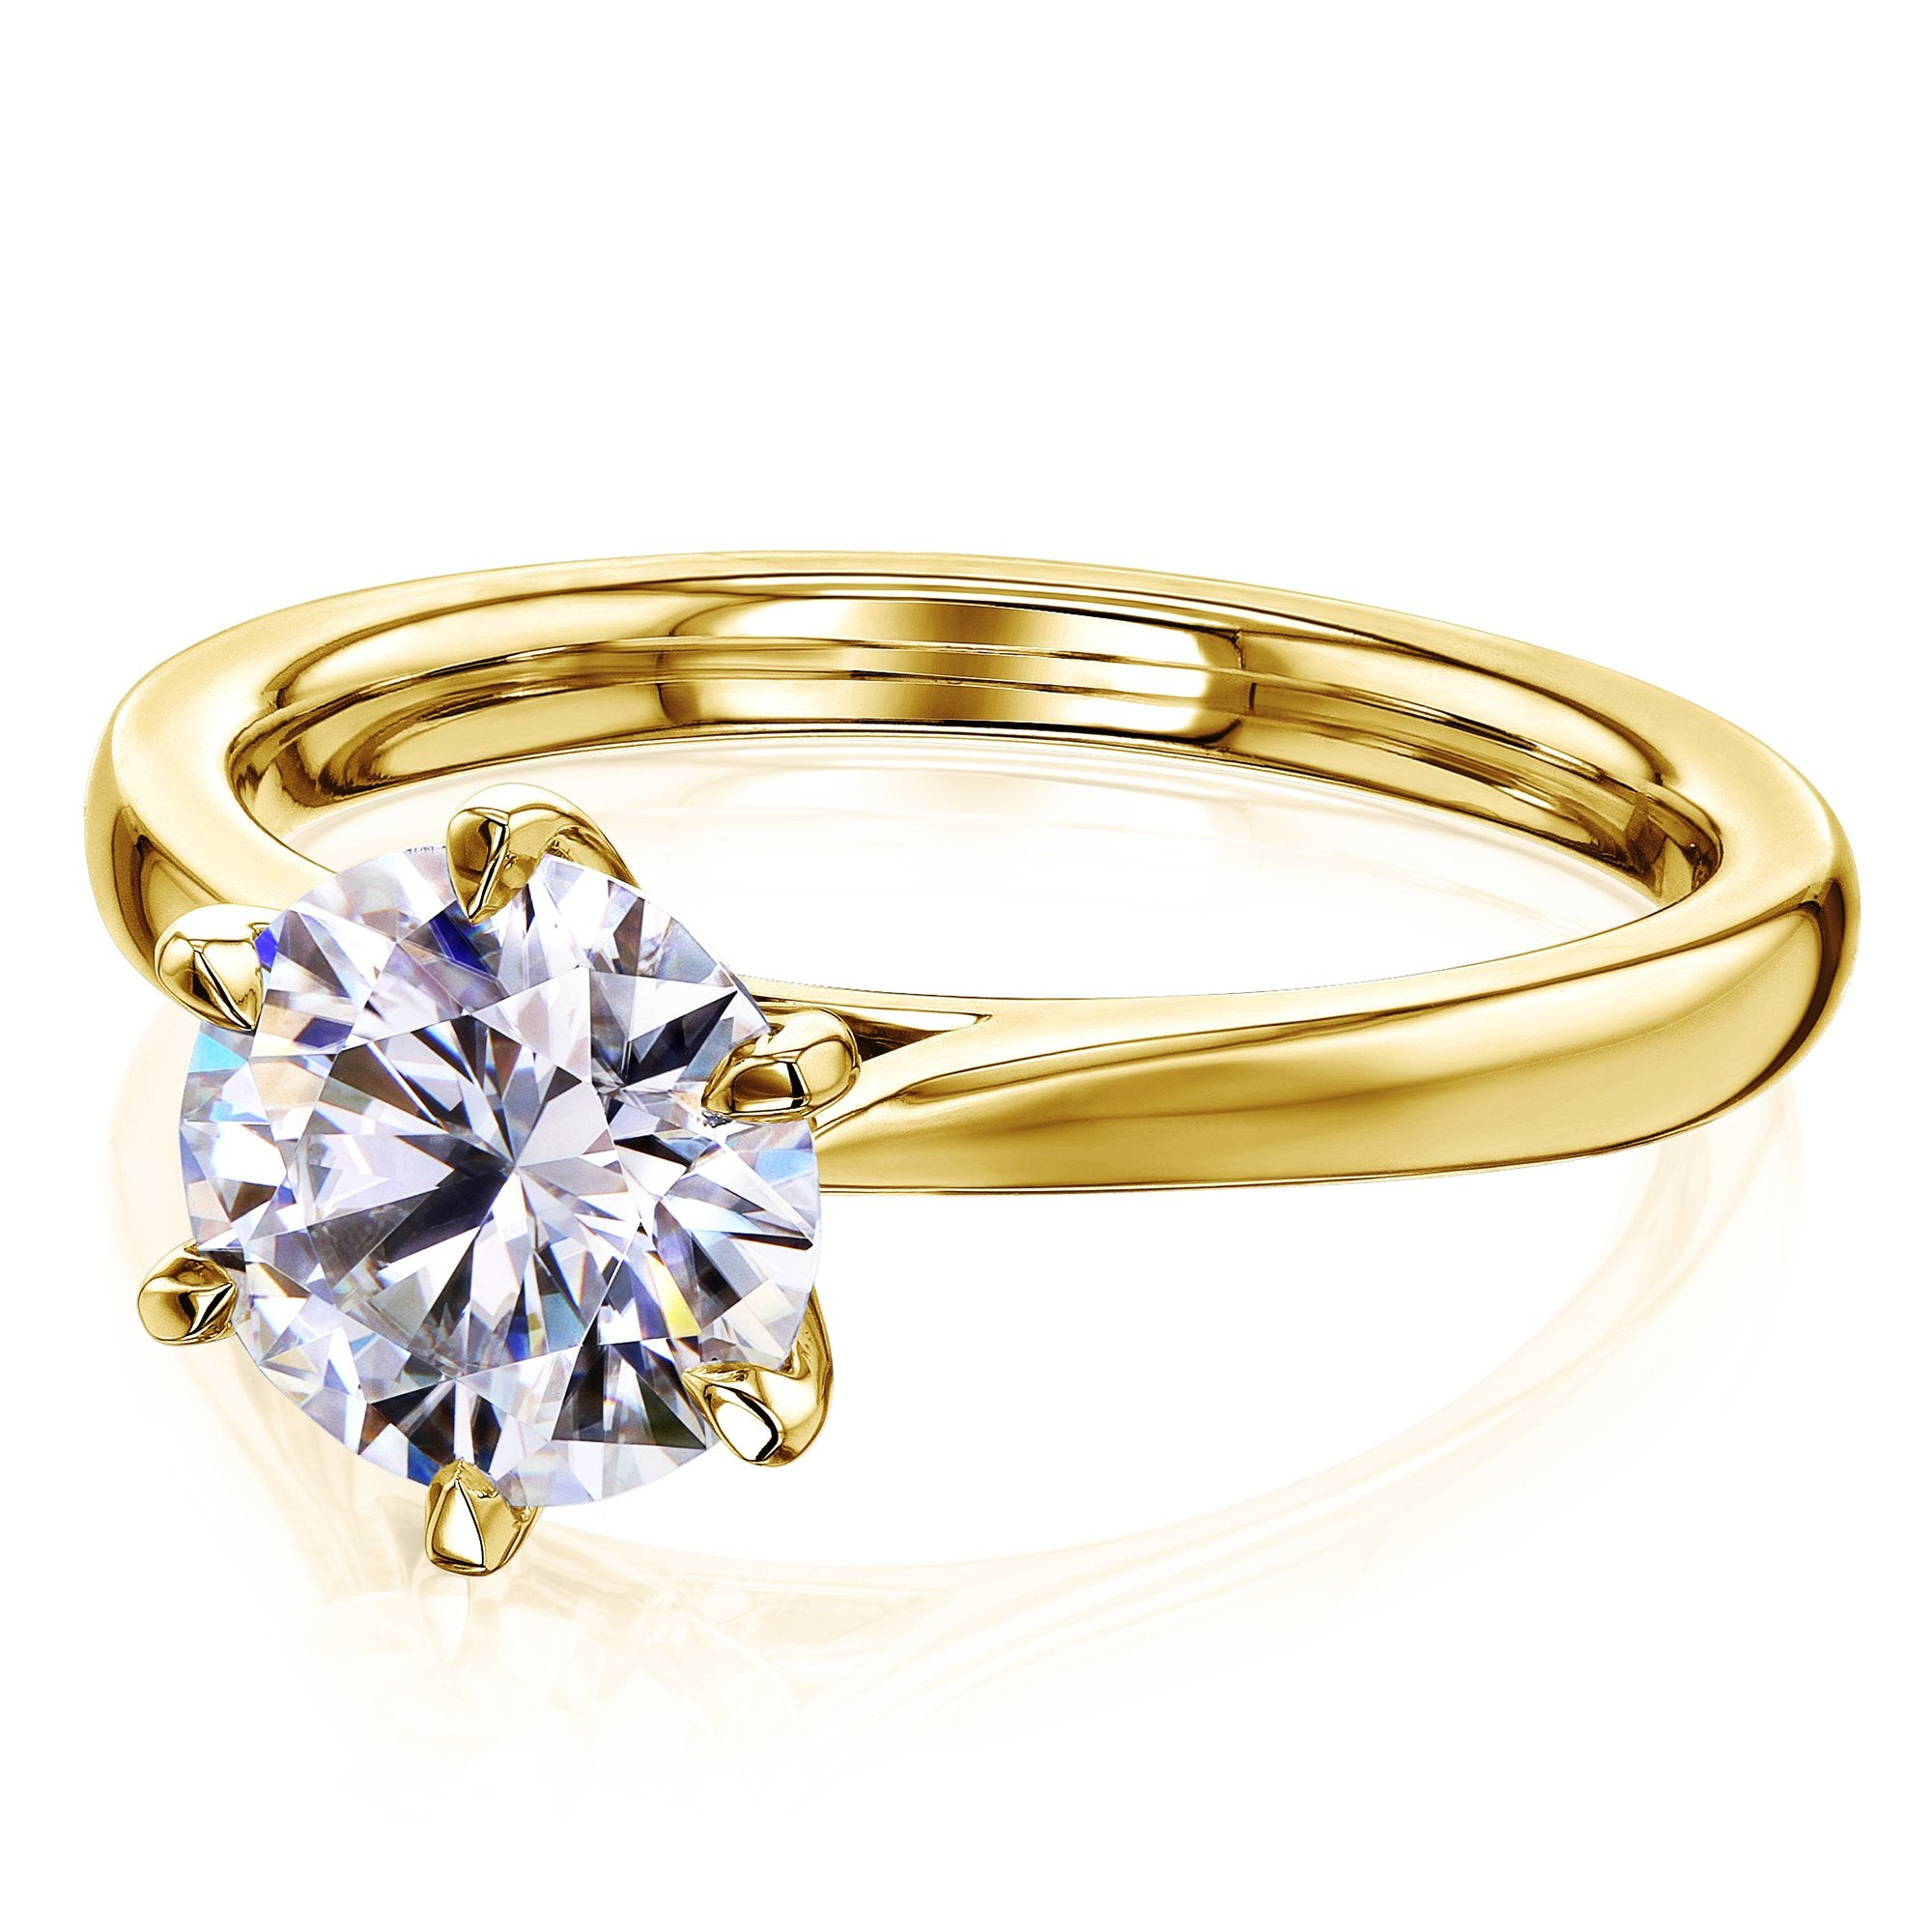 Discounts 1.5ct Round Forever One Moissanite 6-Prong Ring - yellow-gold 7.0